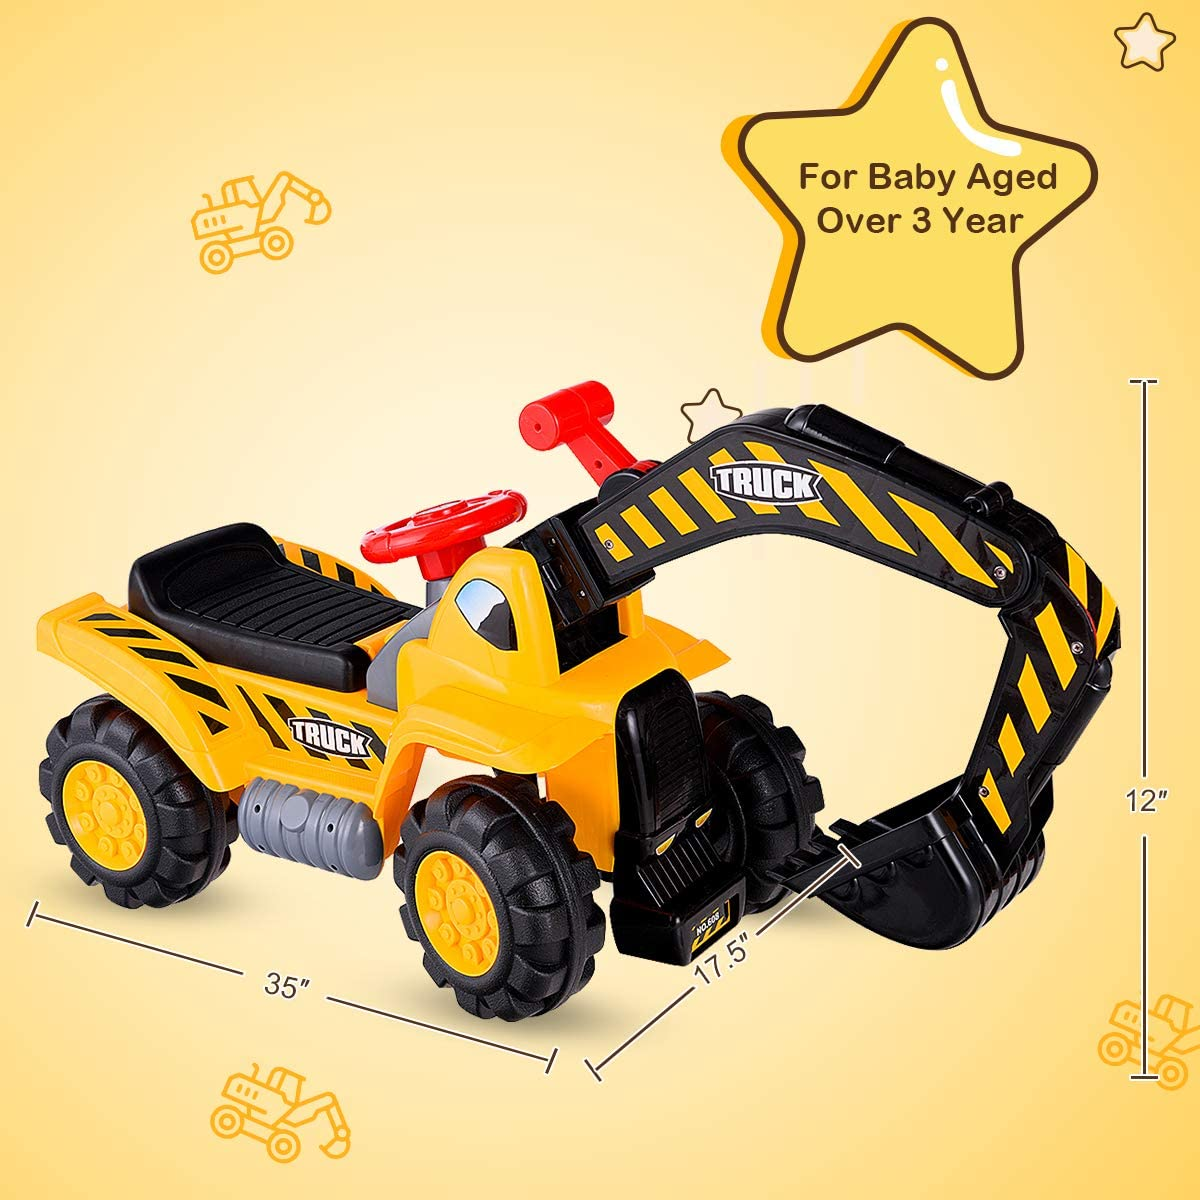 Toys & Games Ride-On Toys & Accessories ghdonat.com Outdoor Digger ...